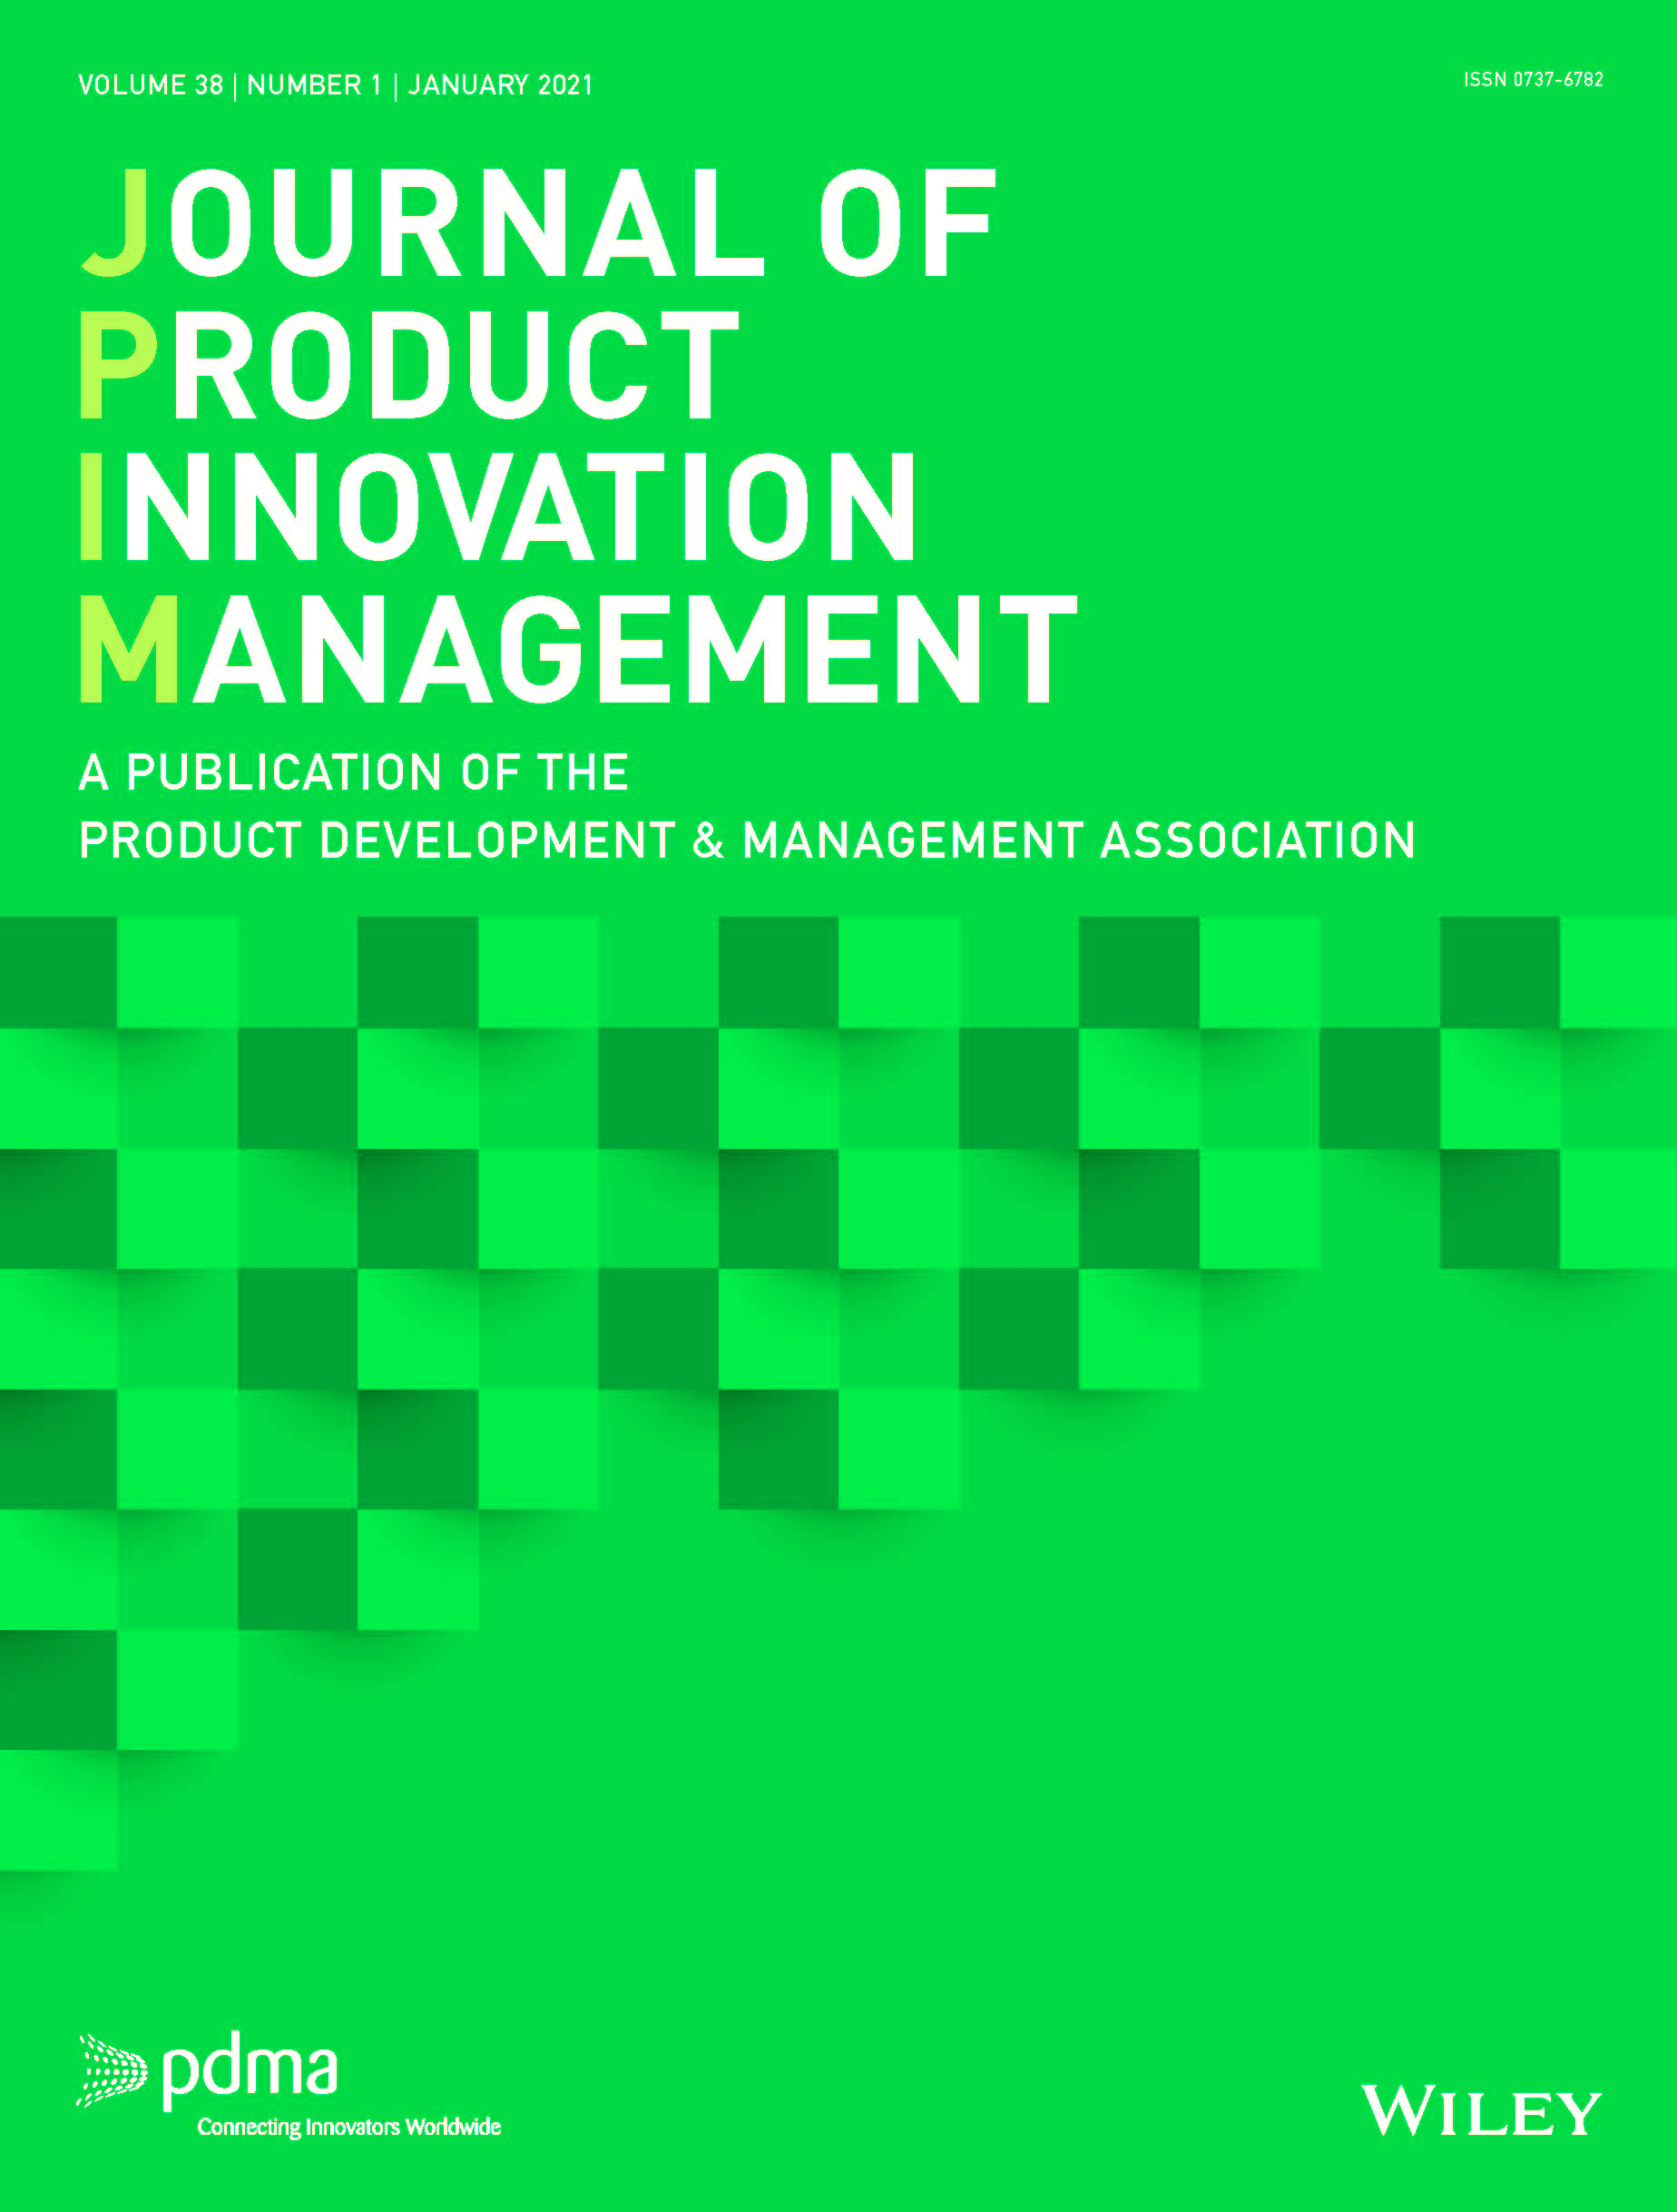 Journal of Product Innovation Management cover